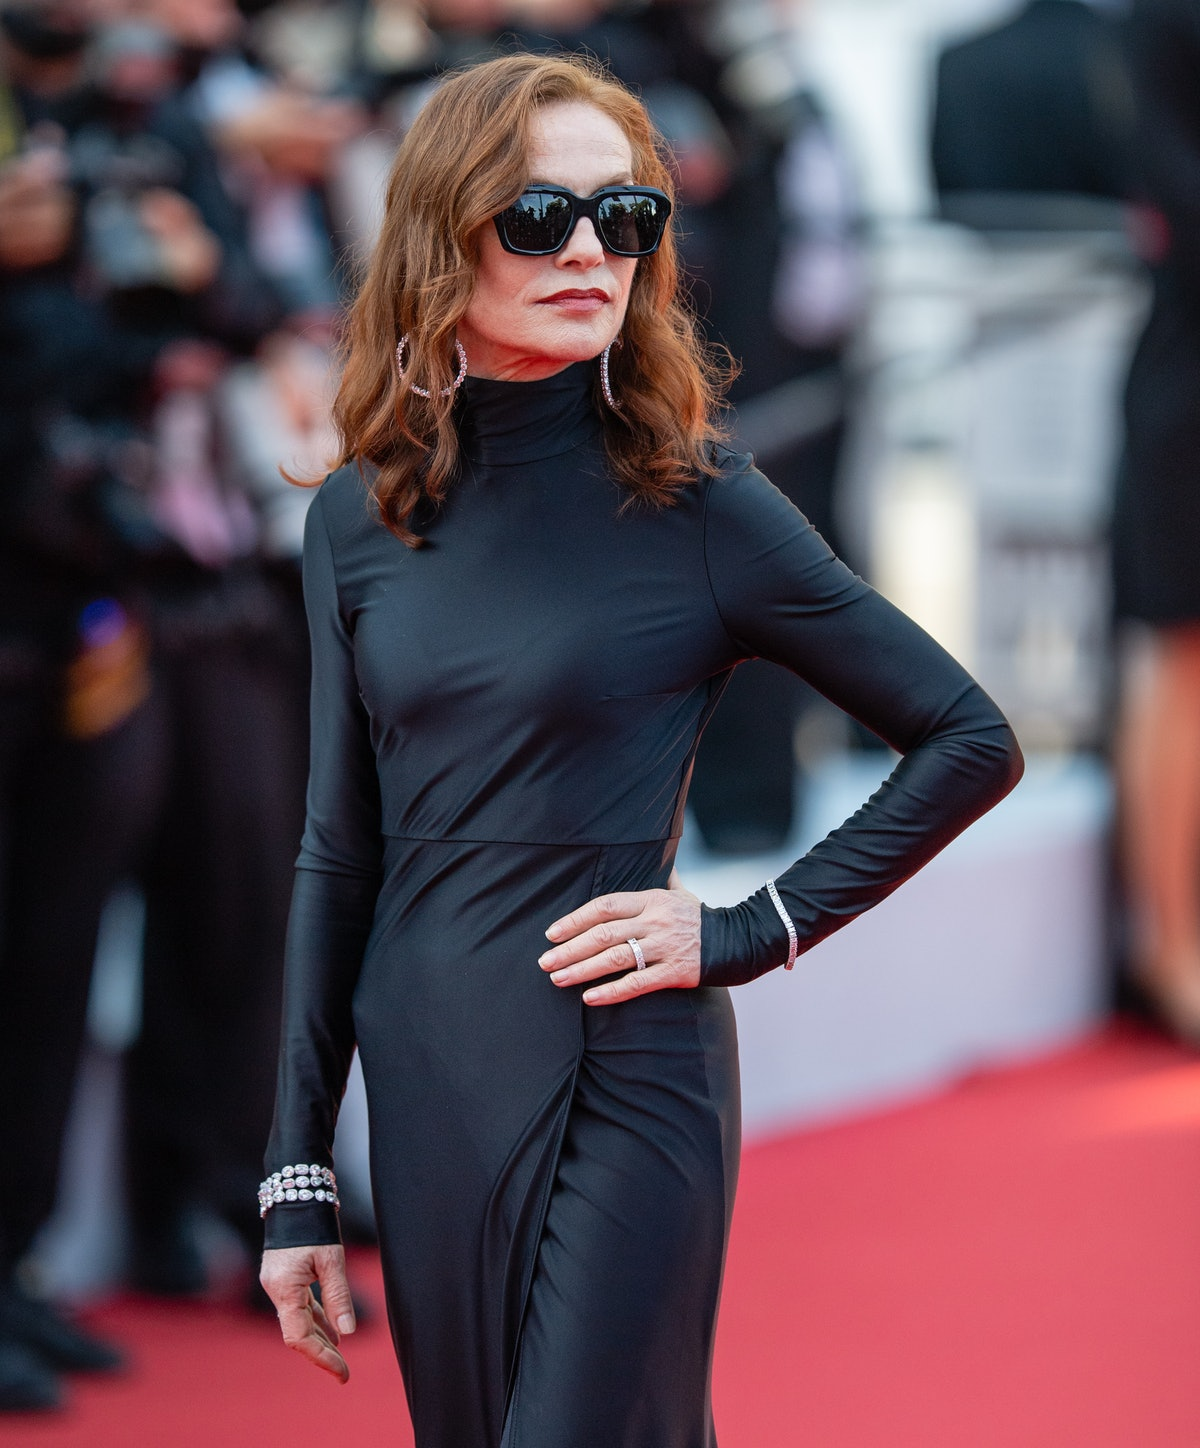 """CANNES, FRANCE - JULY 07: Isabelle Huppert attends the """"Tout S'est Bien Passe (Everything Went Fine)"""" screening during the 74th annual Cannes Film Festival on July 07, 2021 in Cannes, France. (Photo by Samir Hussein/WireImage)"""